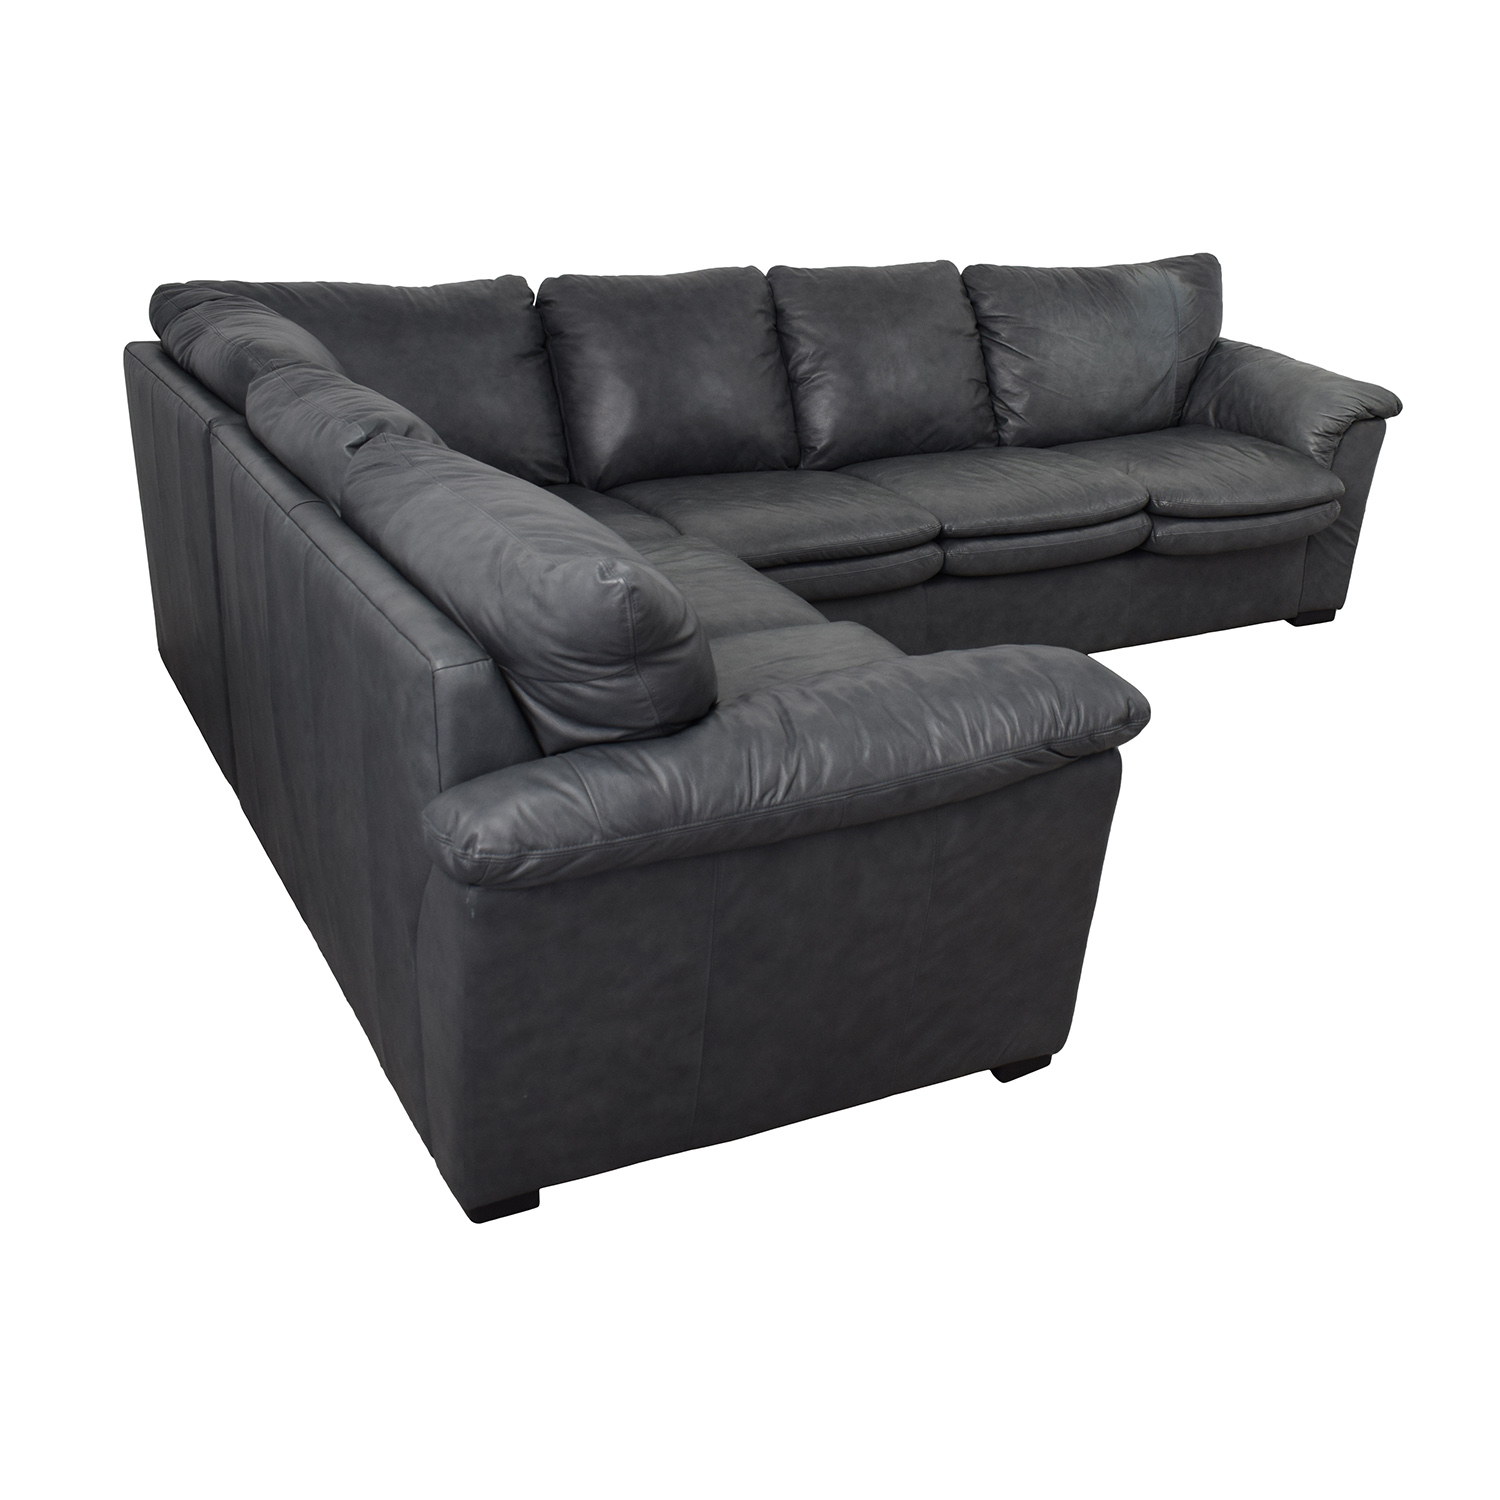 Outstanding 90 Off Jaymar Jaymar Furniture Charcoal Leather L Shaped Sectional Sofas Dailytribune Chair Design For Home Dailytribuneorg